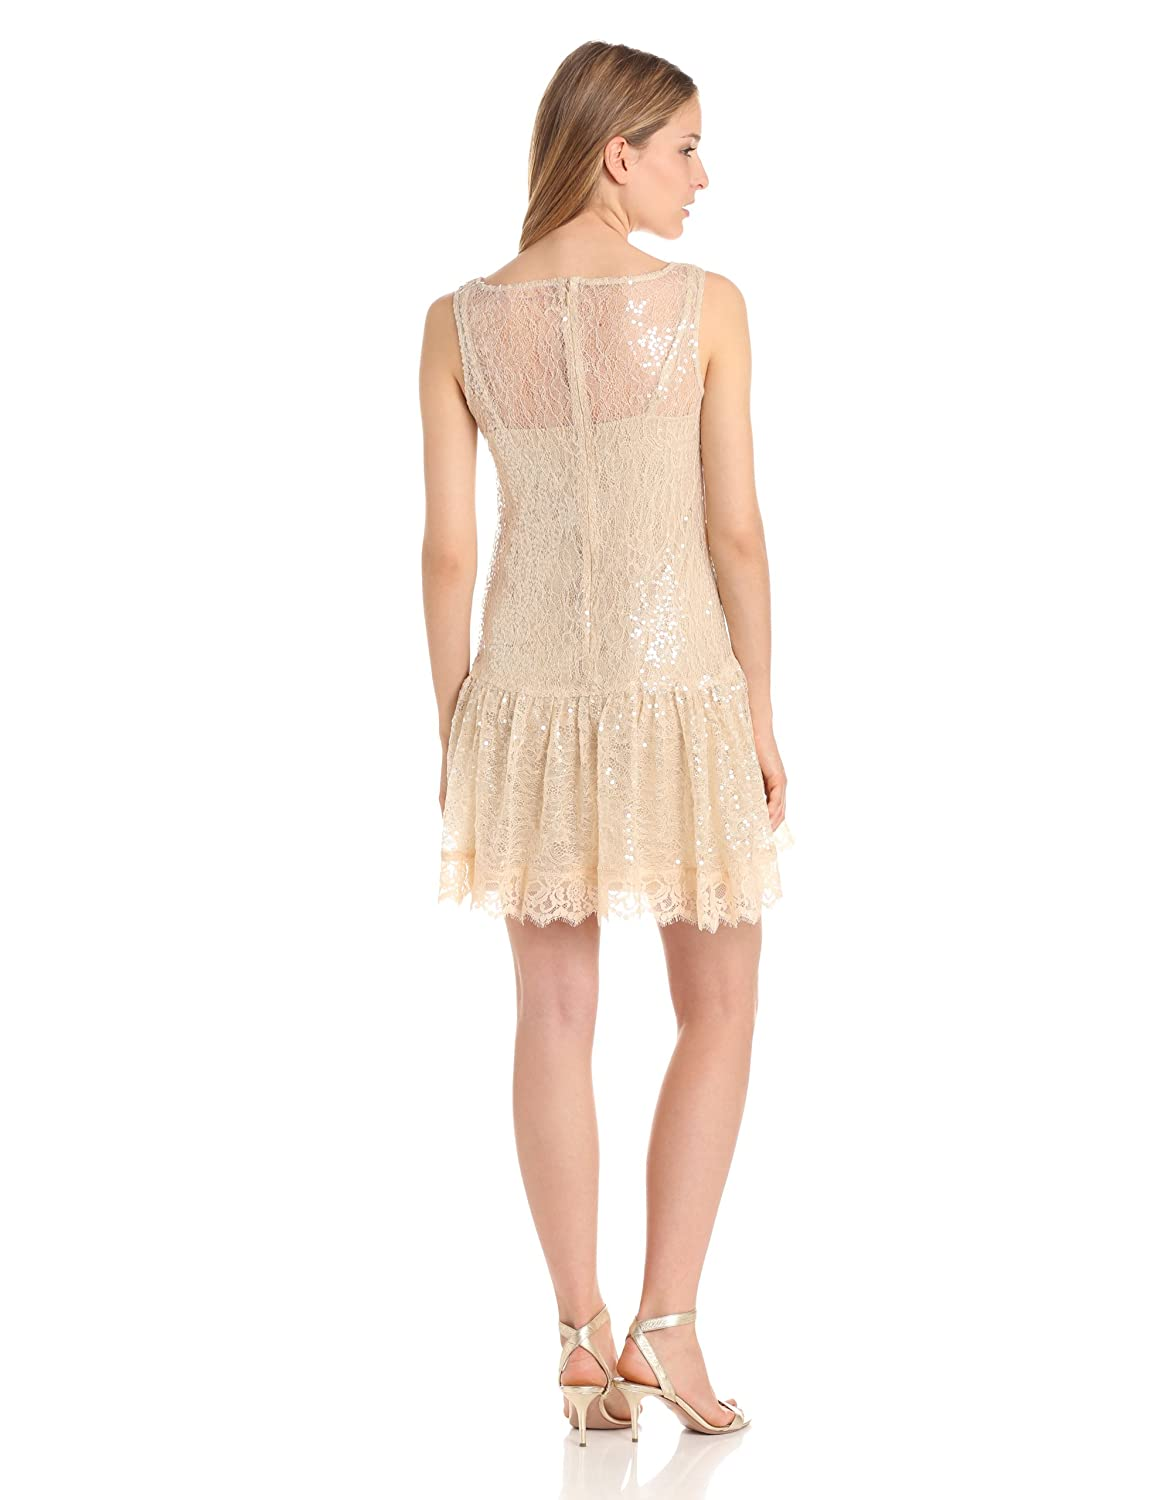 Lace and Sequin Dress with Ruffle Hem